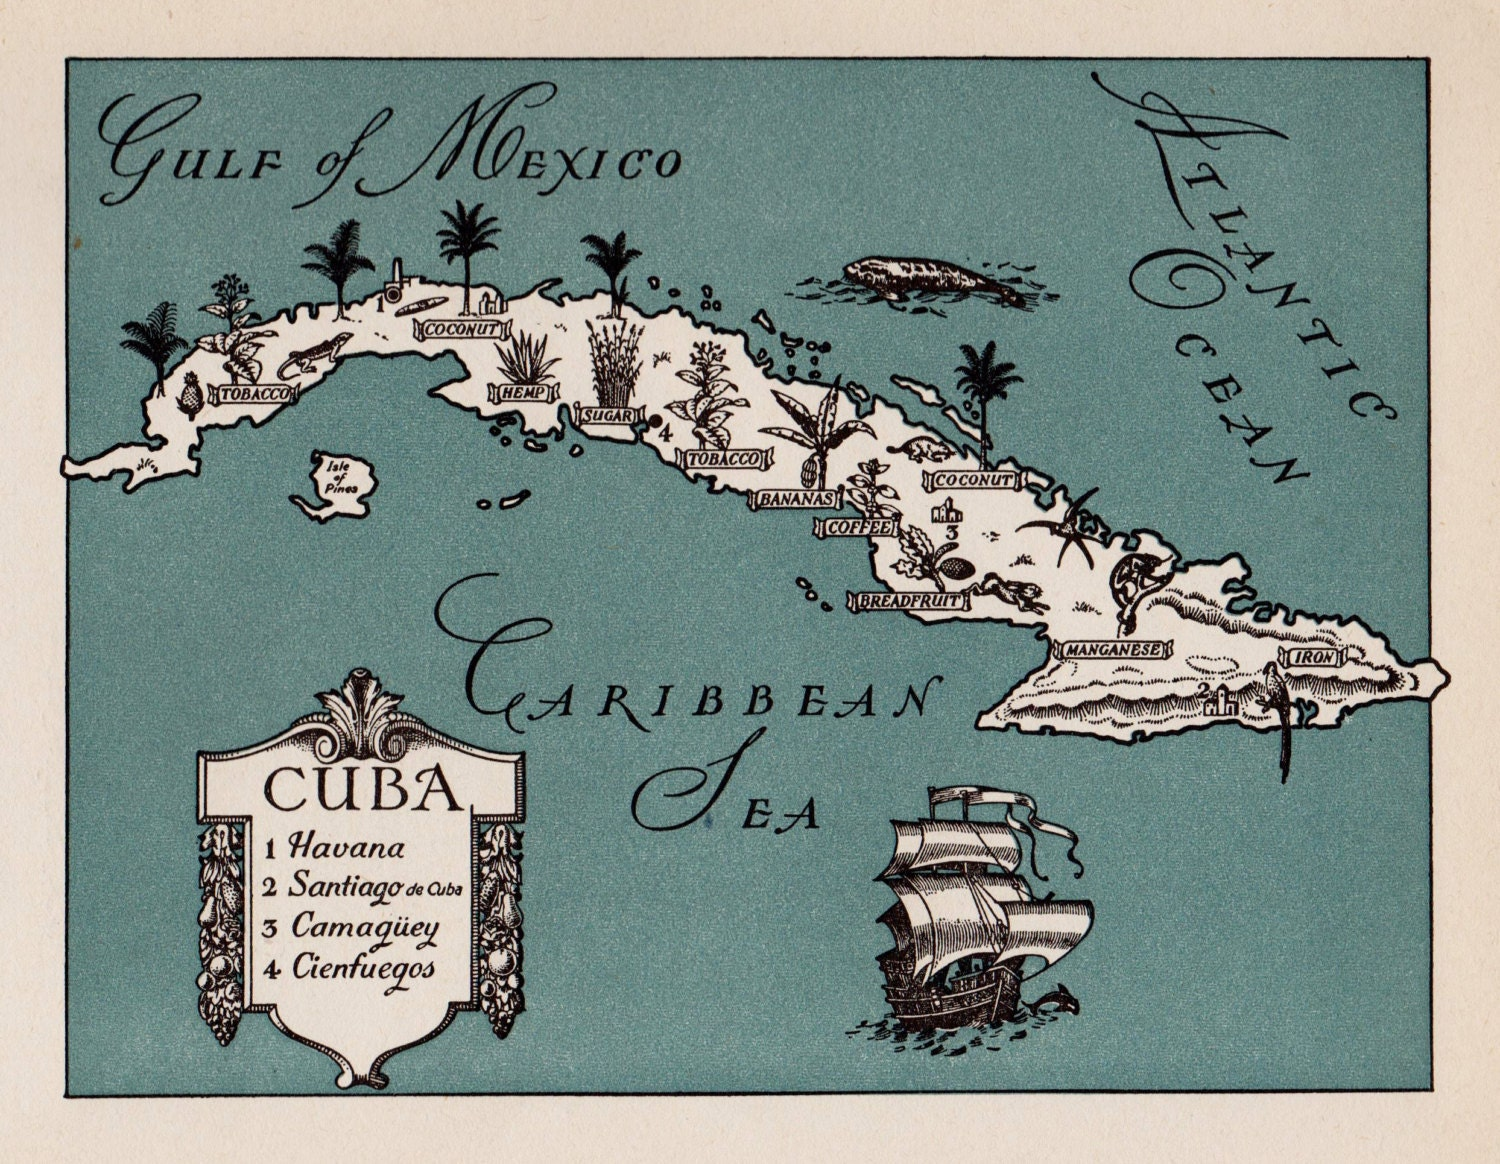 It is an image of Challenger Printable Map of Cuba